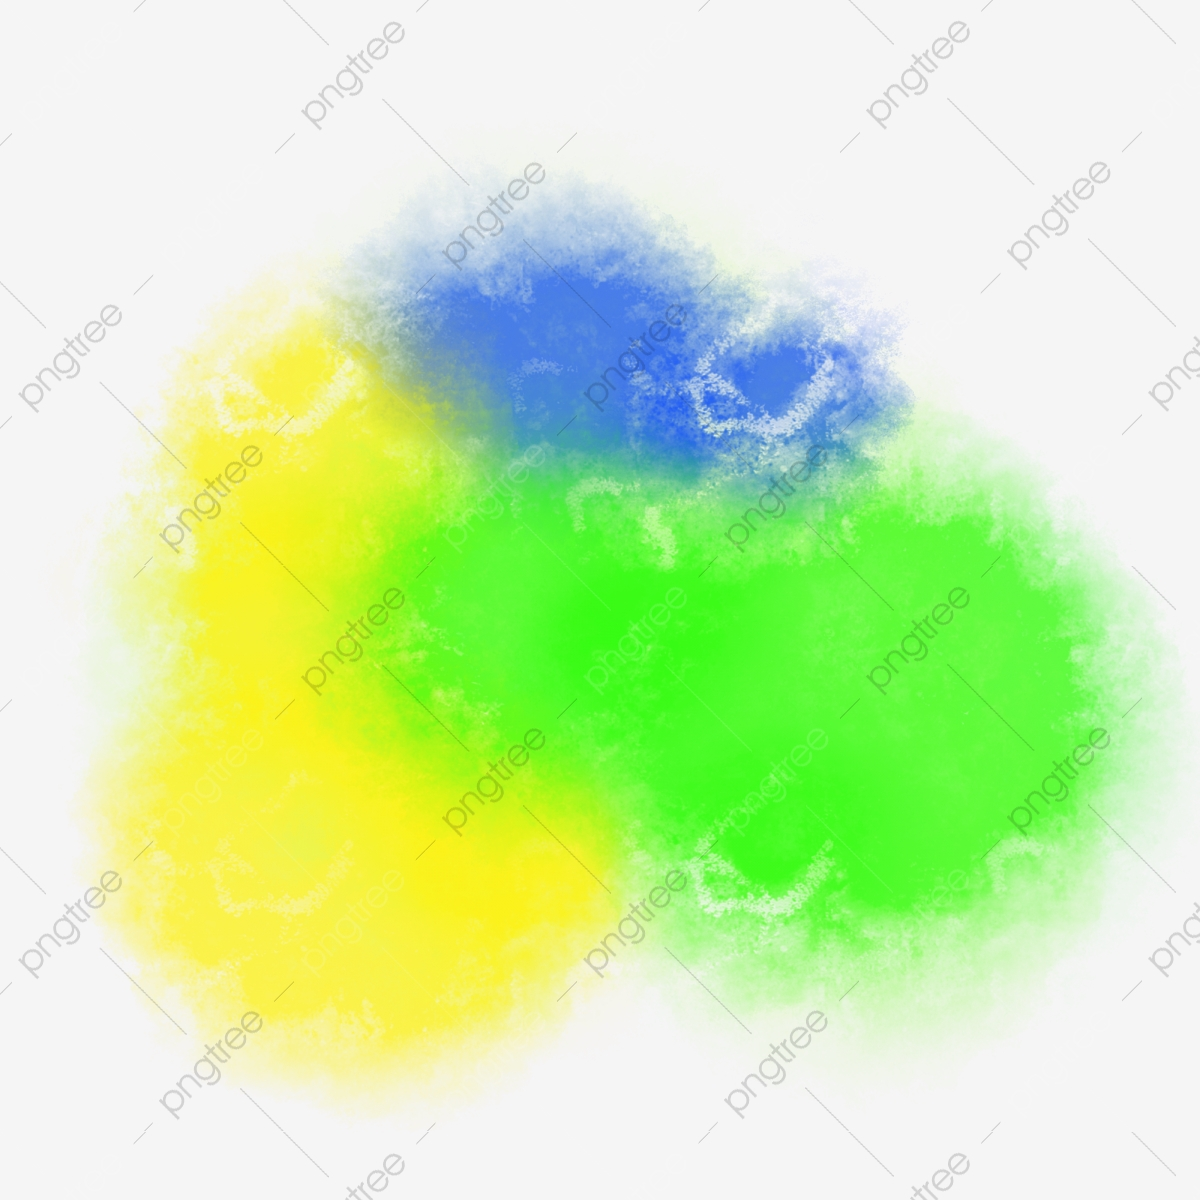 https fr pngtree com freepng bright blue green yellow contrast color paint splashing 4444386 html